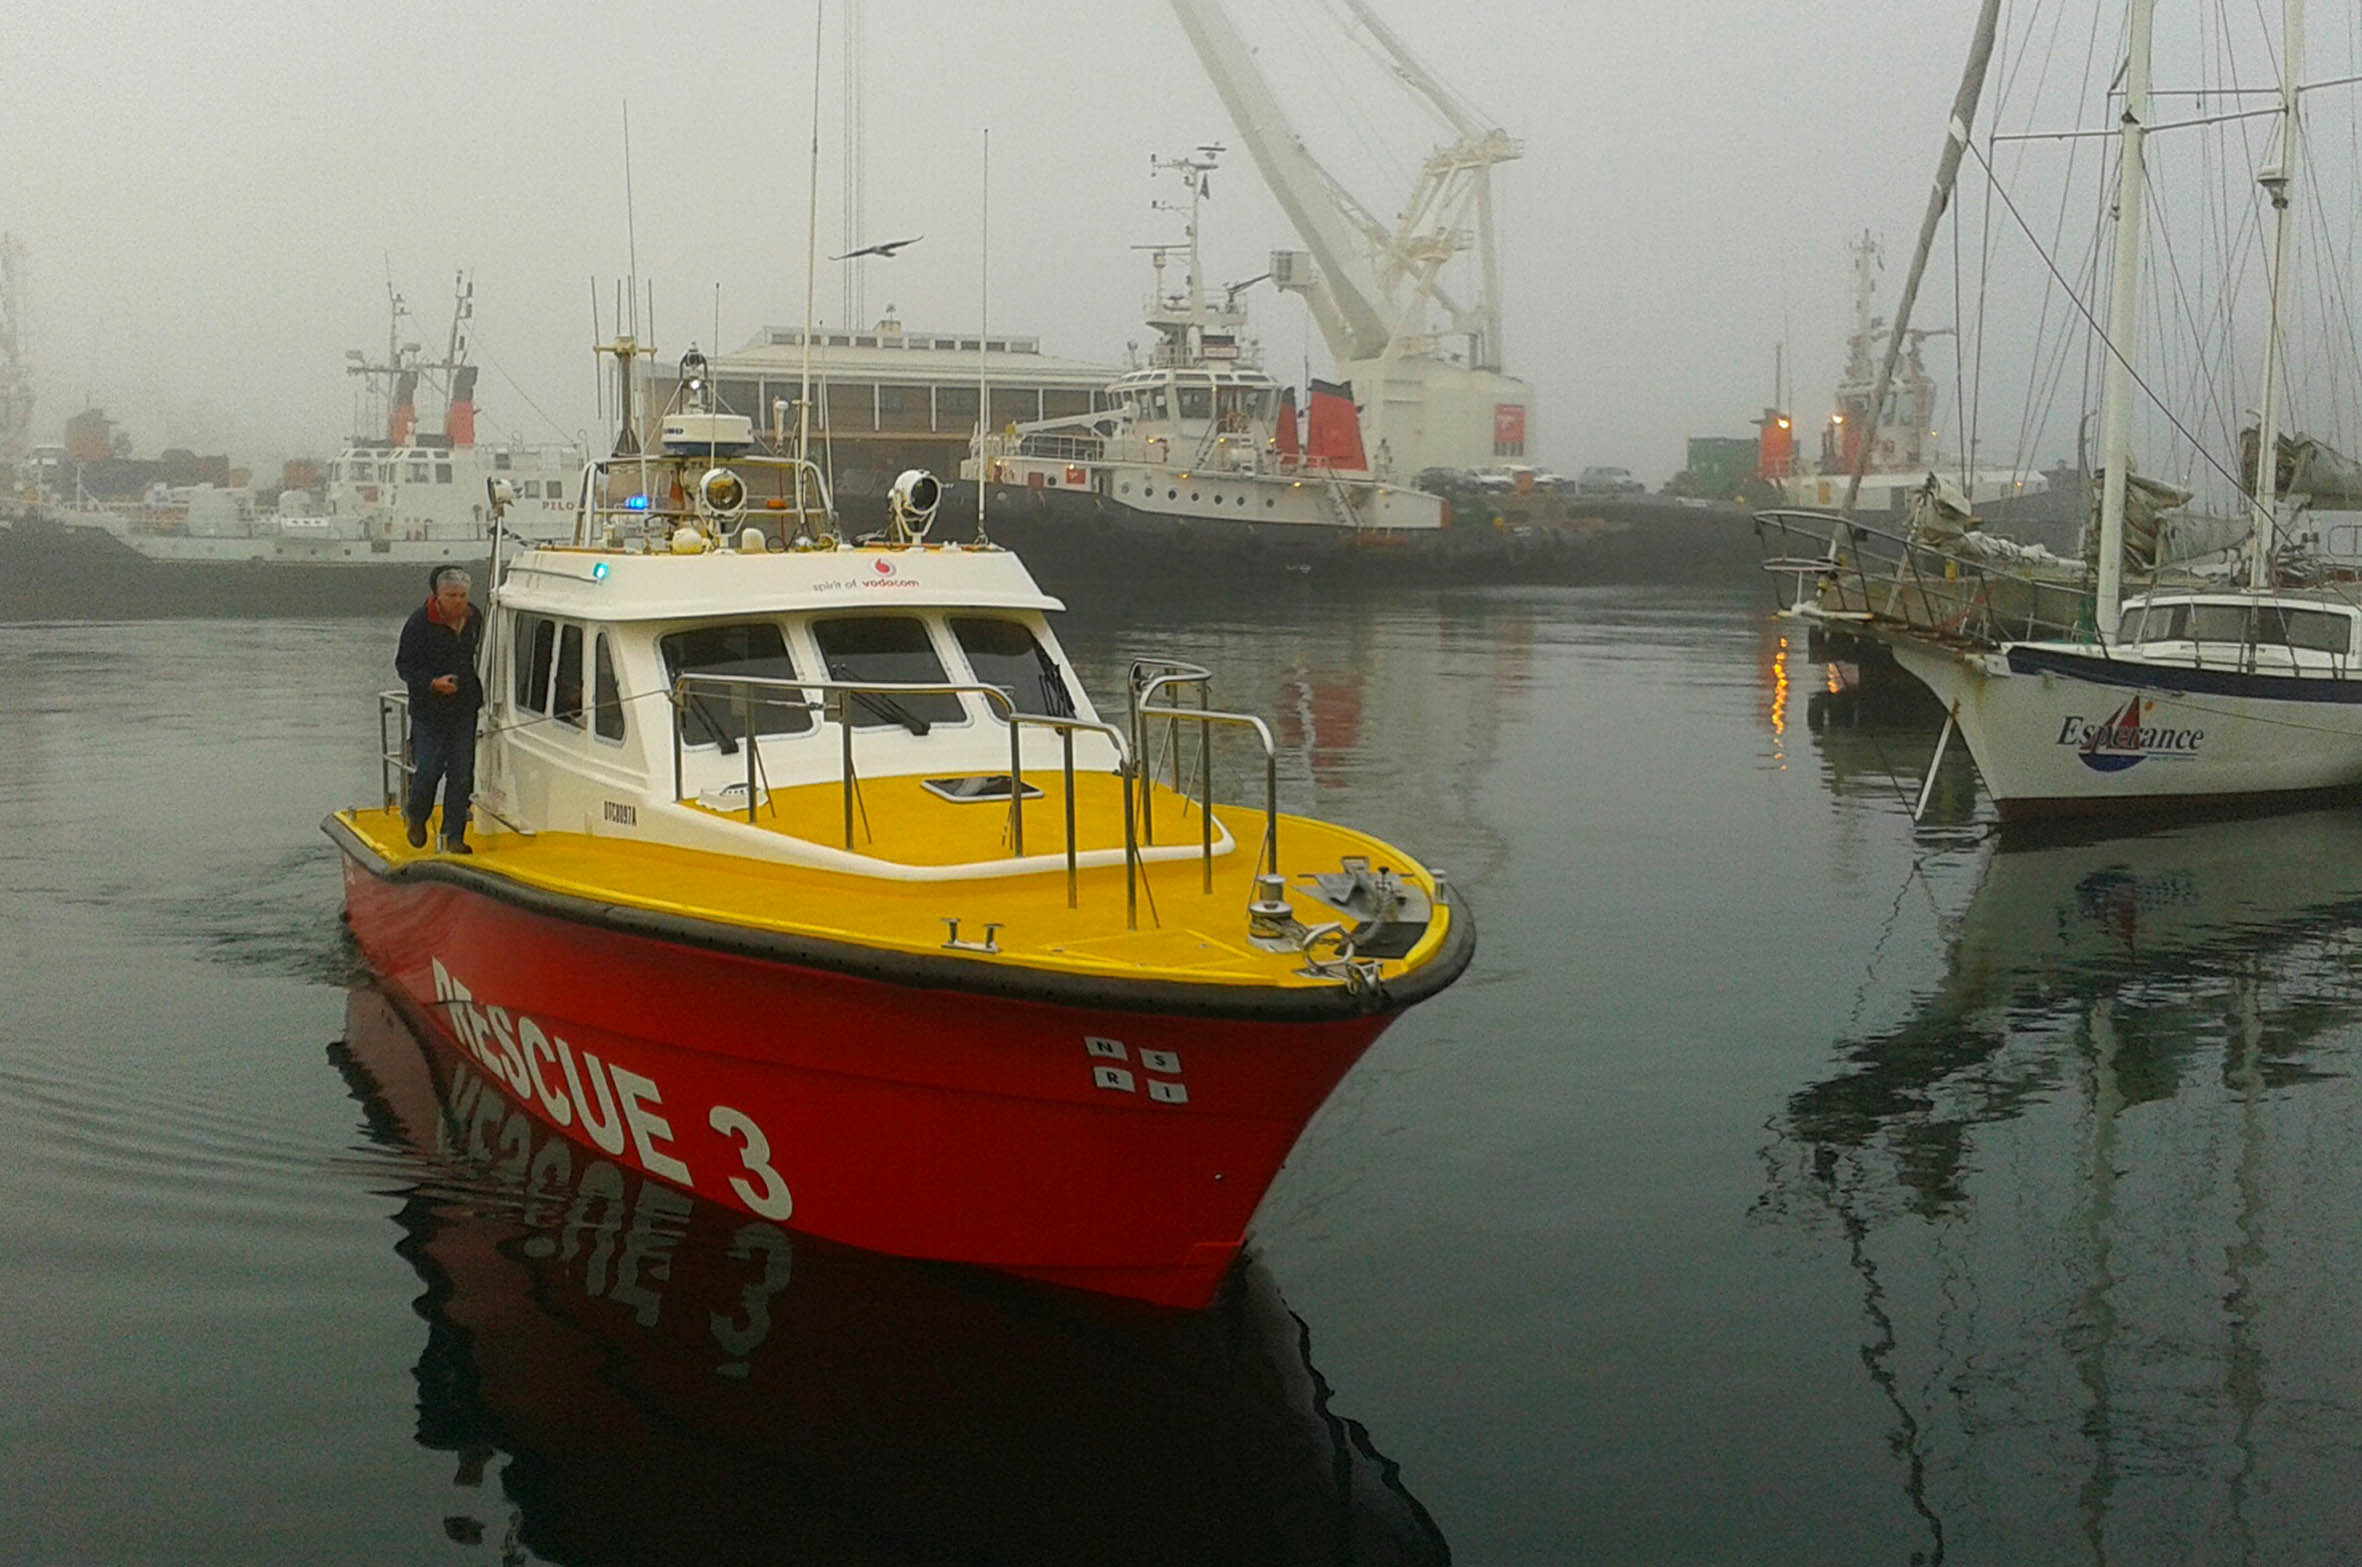 Station commander Pat Van Eyssen on the Spirit of Vodacom, the Table Bay rescue boat as it leaves the V&A Waterfront to join in the search for the missing fishermen on the West Coast. Picture Paula Leech.